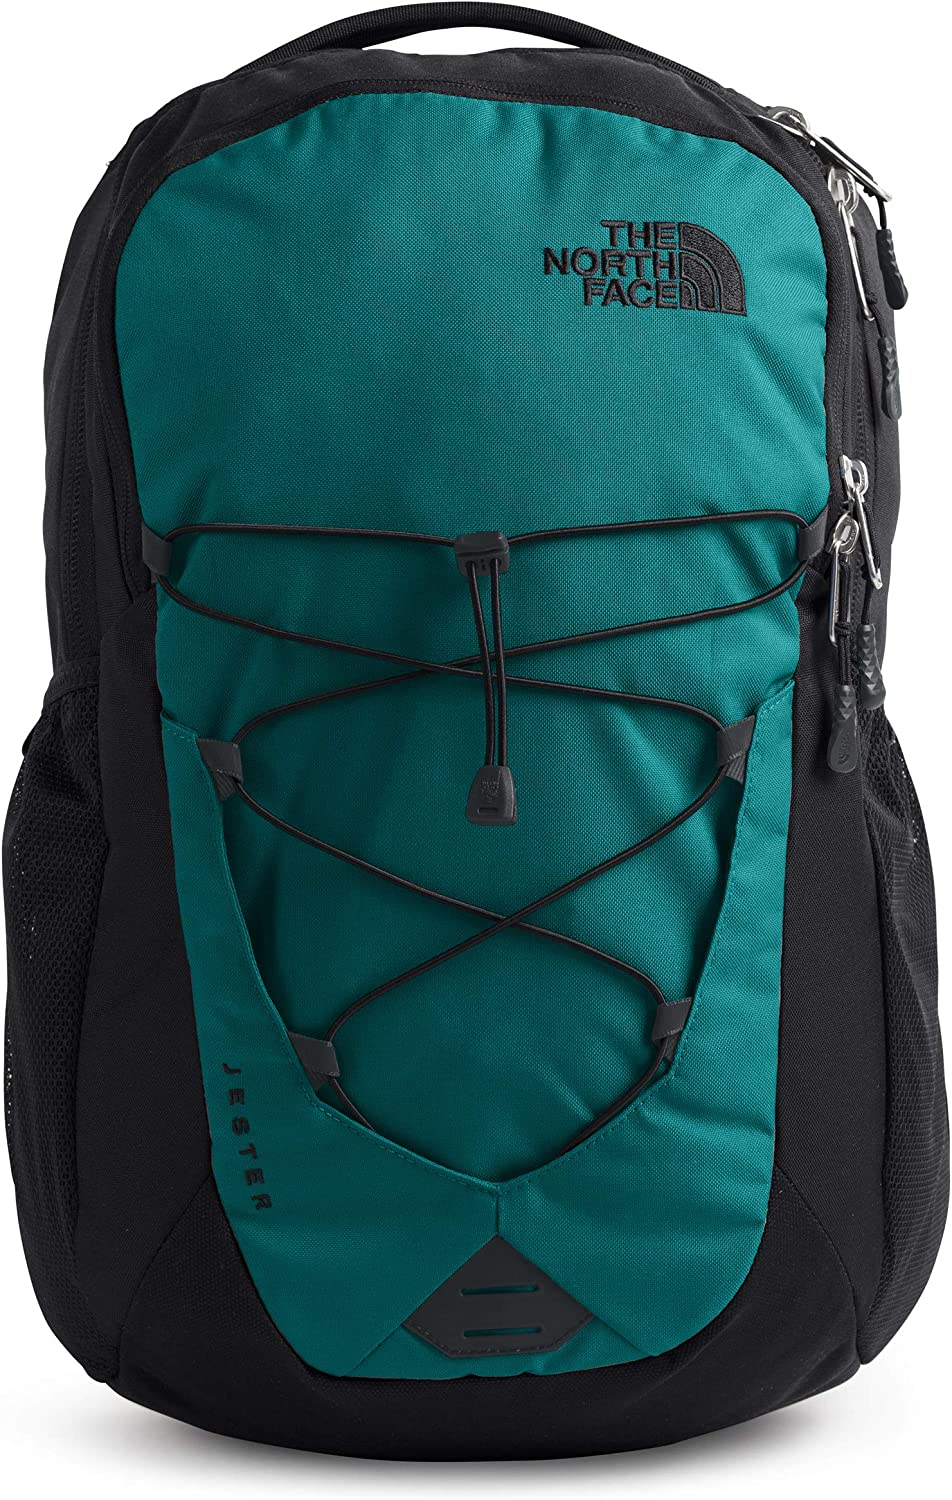 Unisex Adulto The North Face Jester Fanfregn//Tnfblk Daypack Fanfare Green//TNF Black OS